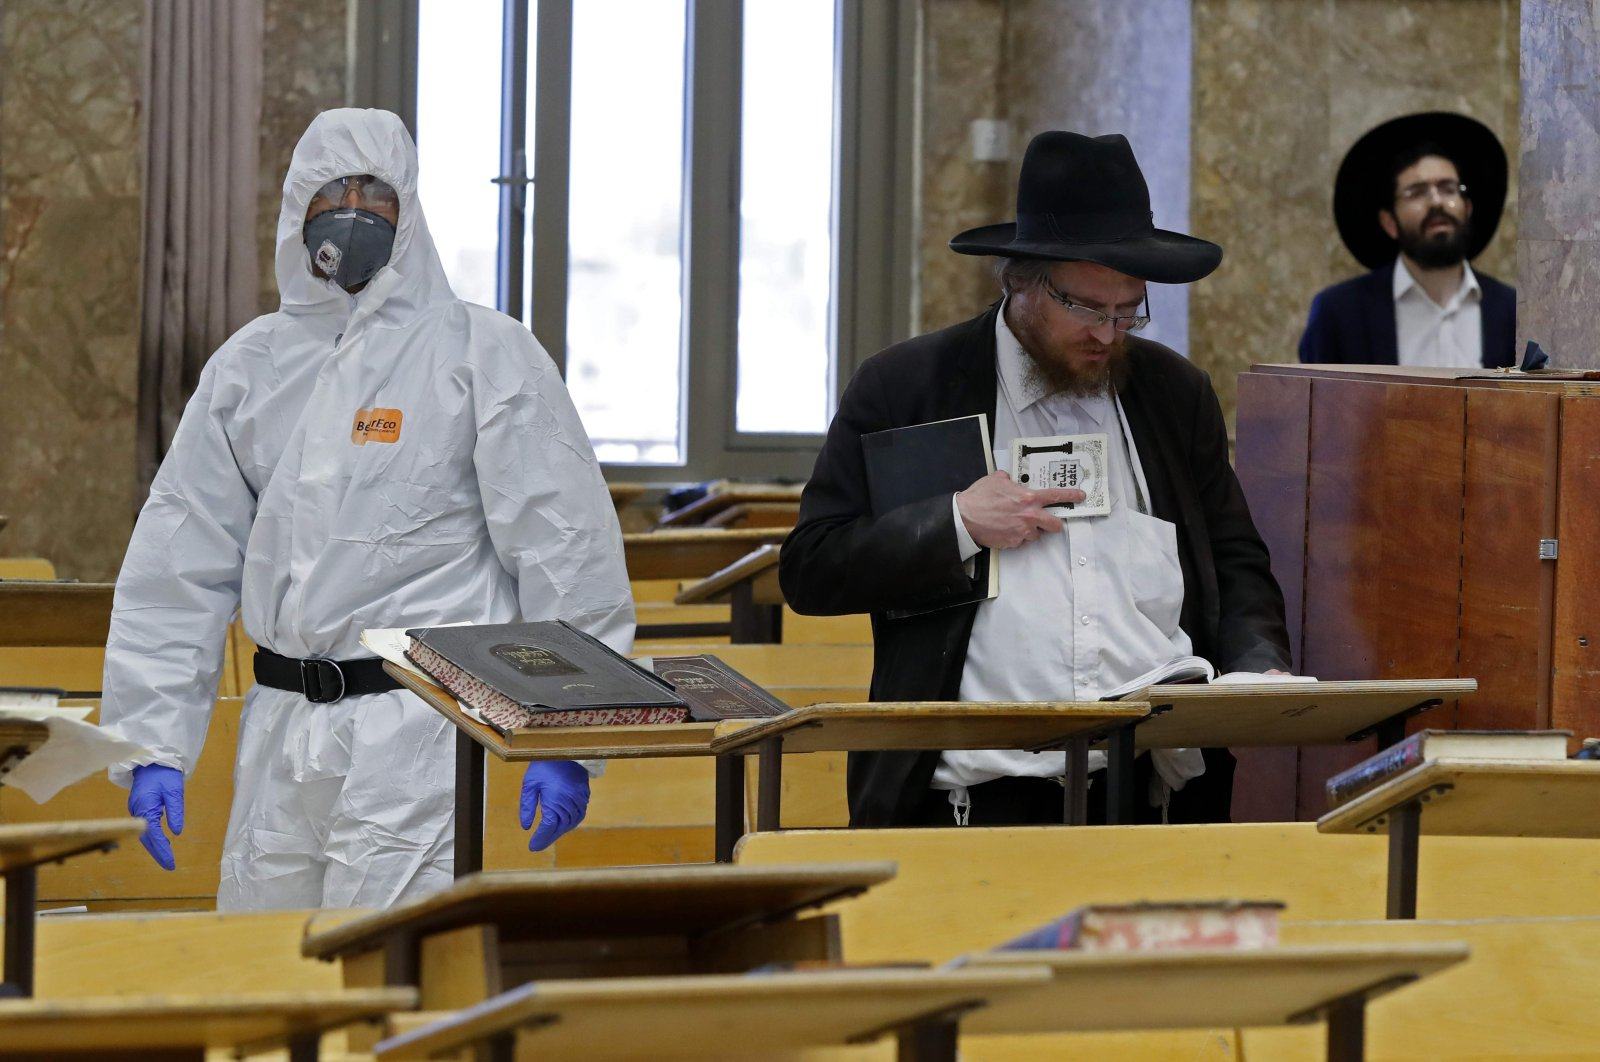 In this file photo, an Israeli police officer, dressed in a protective outfit, enters a yeshiva (a Jewish educational institution for studies of traditional religious texts) in the Israeli city of Bnei Brak during a check to ensure that social distancing measures imposed by Israeli authorities meant to curb the spread of the coronavirus are being followed, April 2, 2020. (AFP Photo)